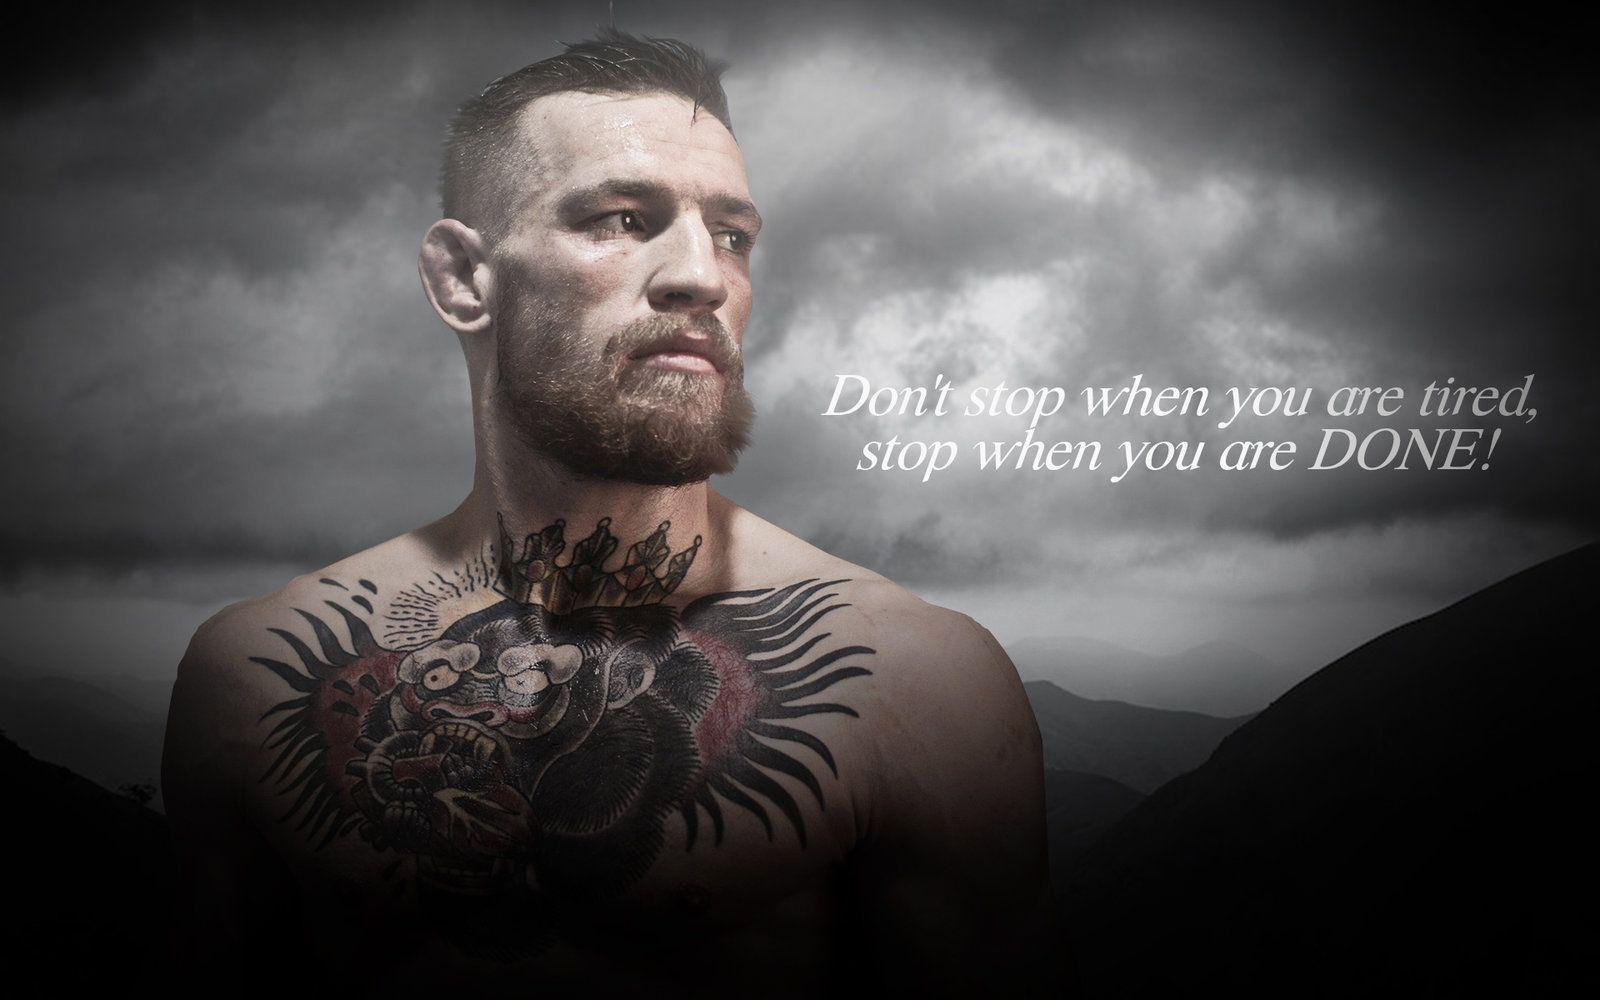 Inspirational Quote Wallpaper For Computer Conor Mcgregor Wallpapers Wallpaper Cave